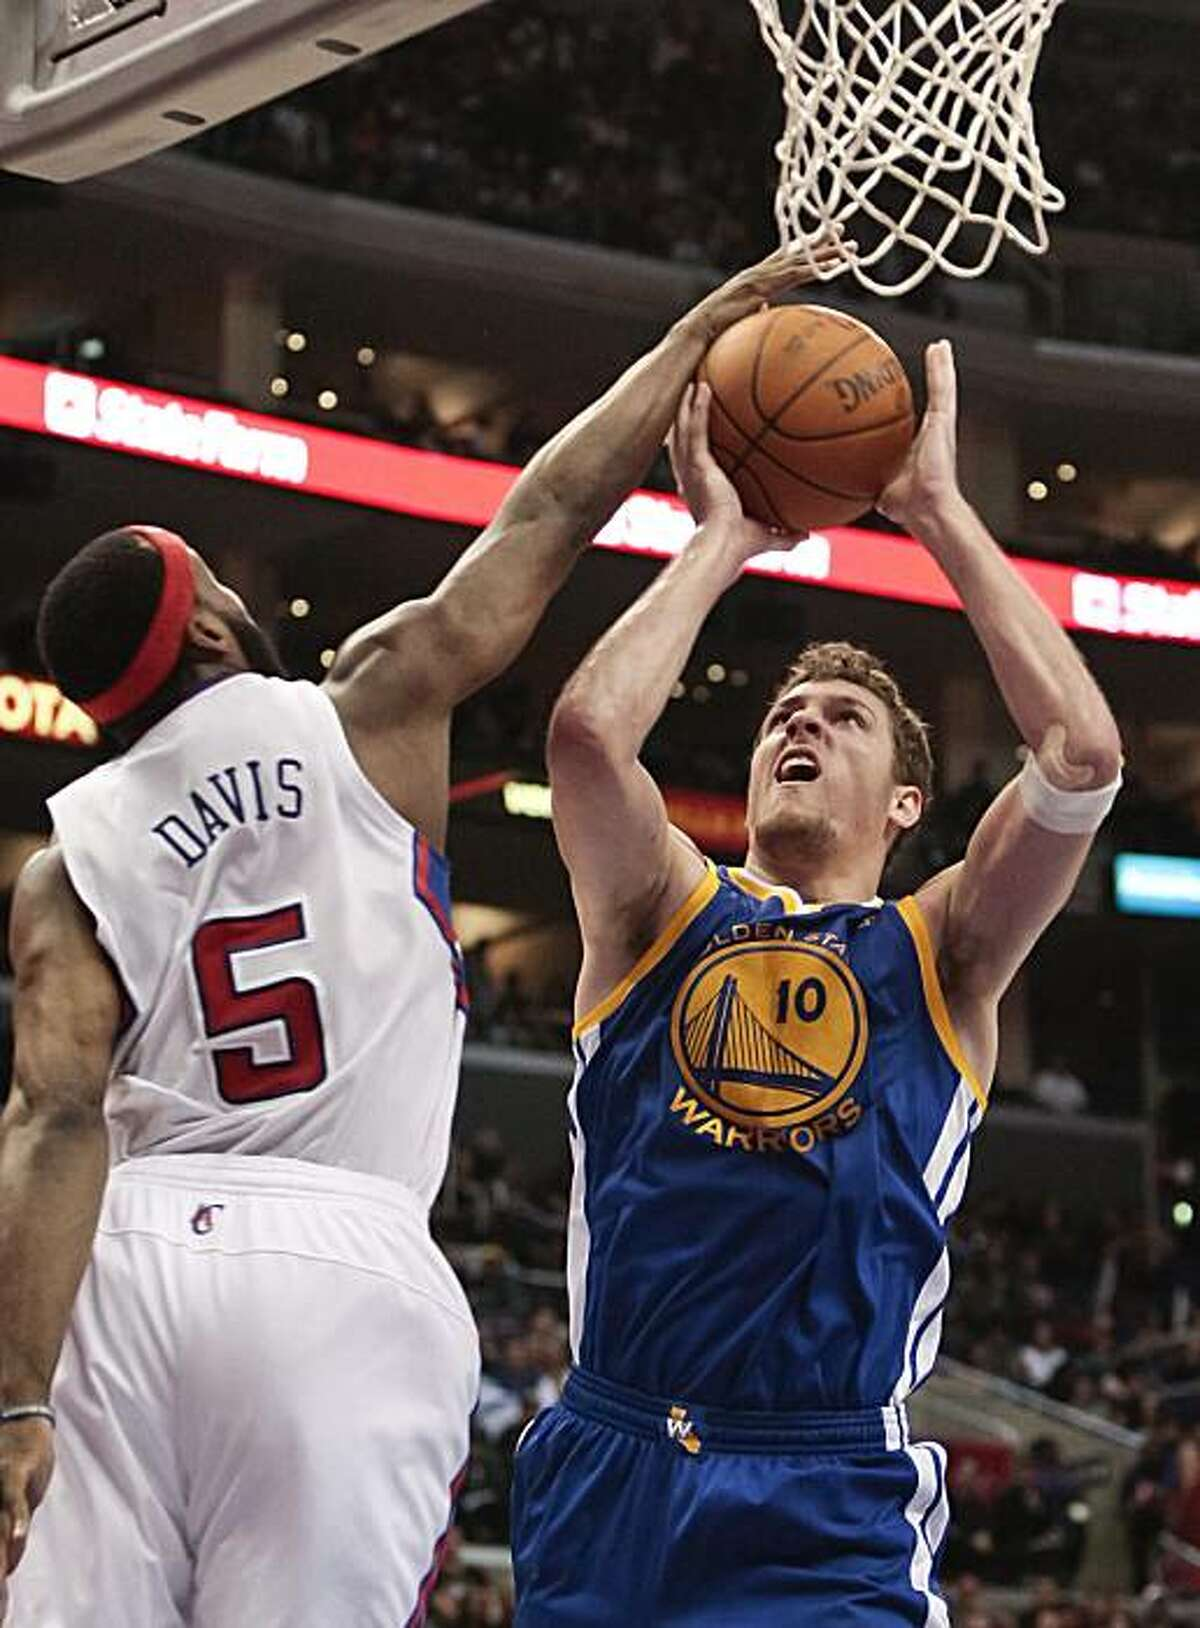 Los Angeles Clippers guard Baron Davis, left, blocks the shot of Golden State Warriors center David Lee during the first half of their NBA basketball game, Saturday, Jan. 22, 2011, in Los Angeles.